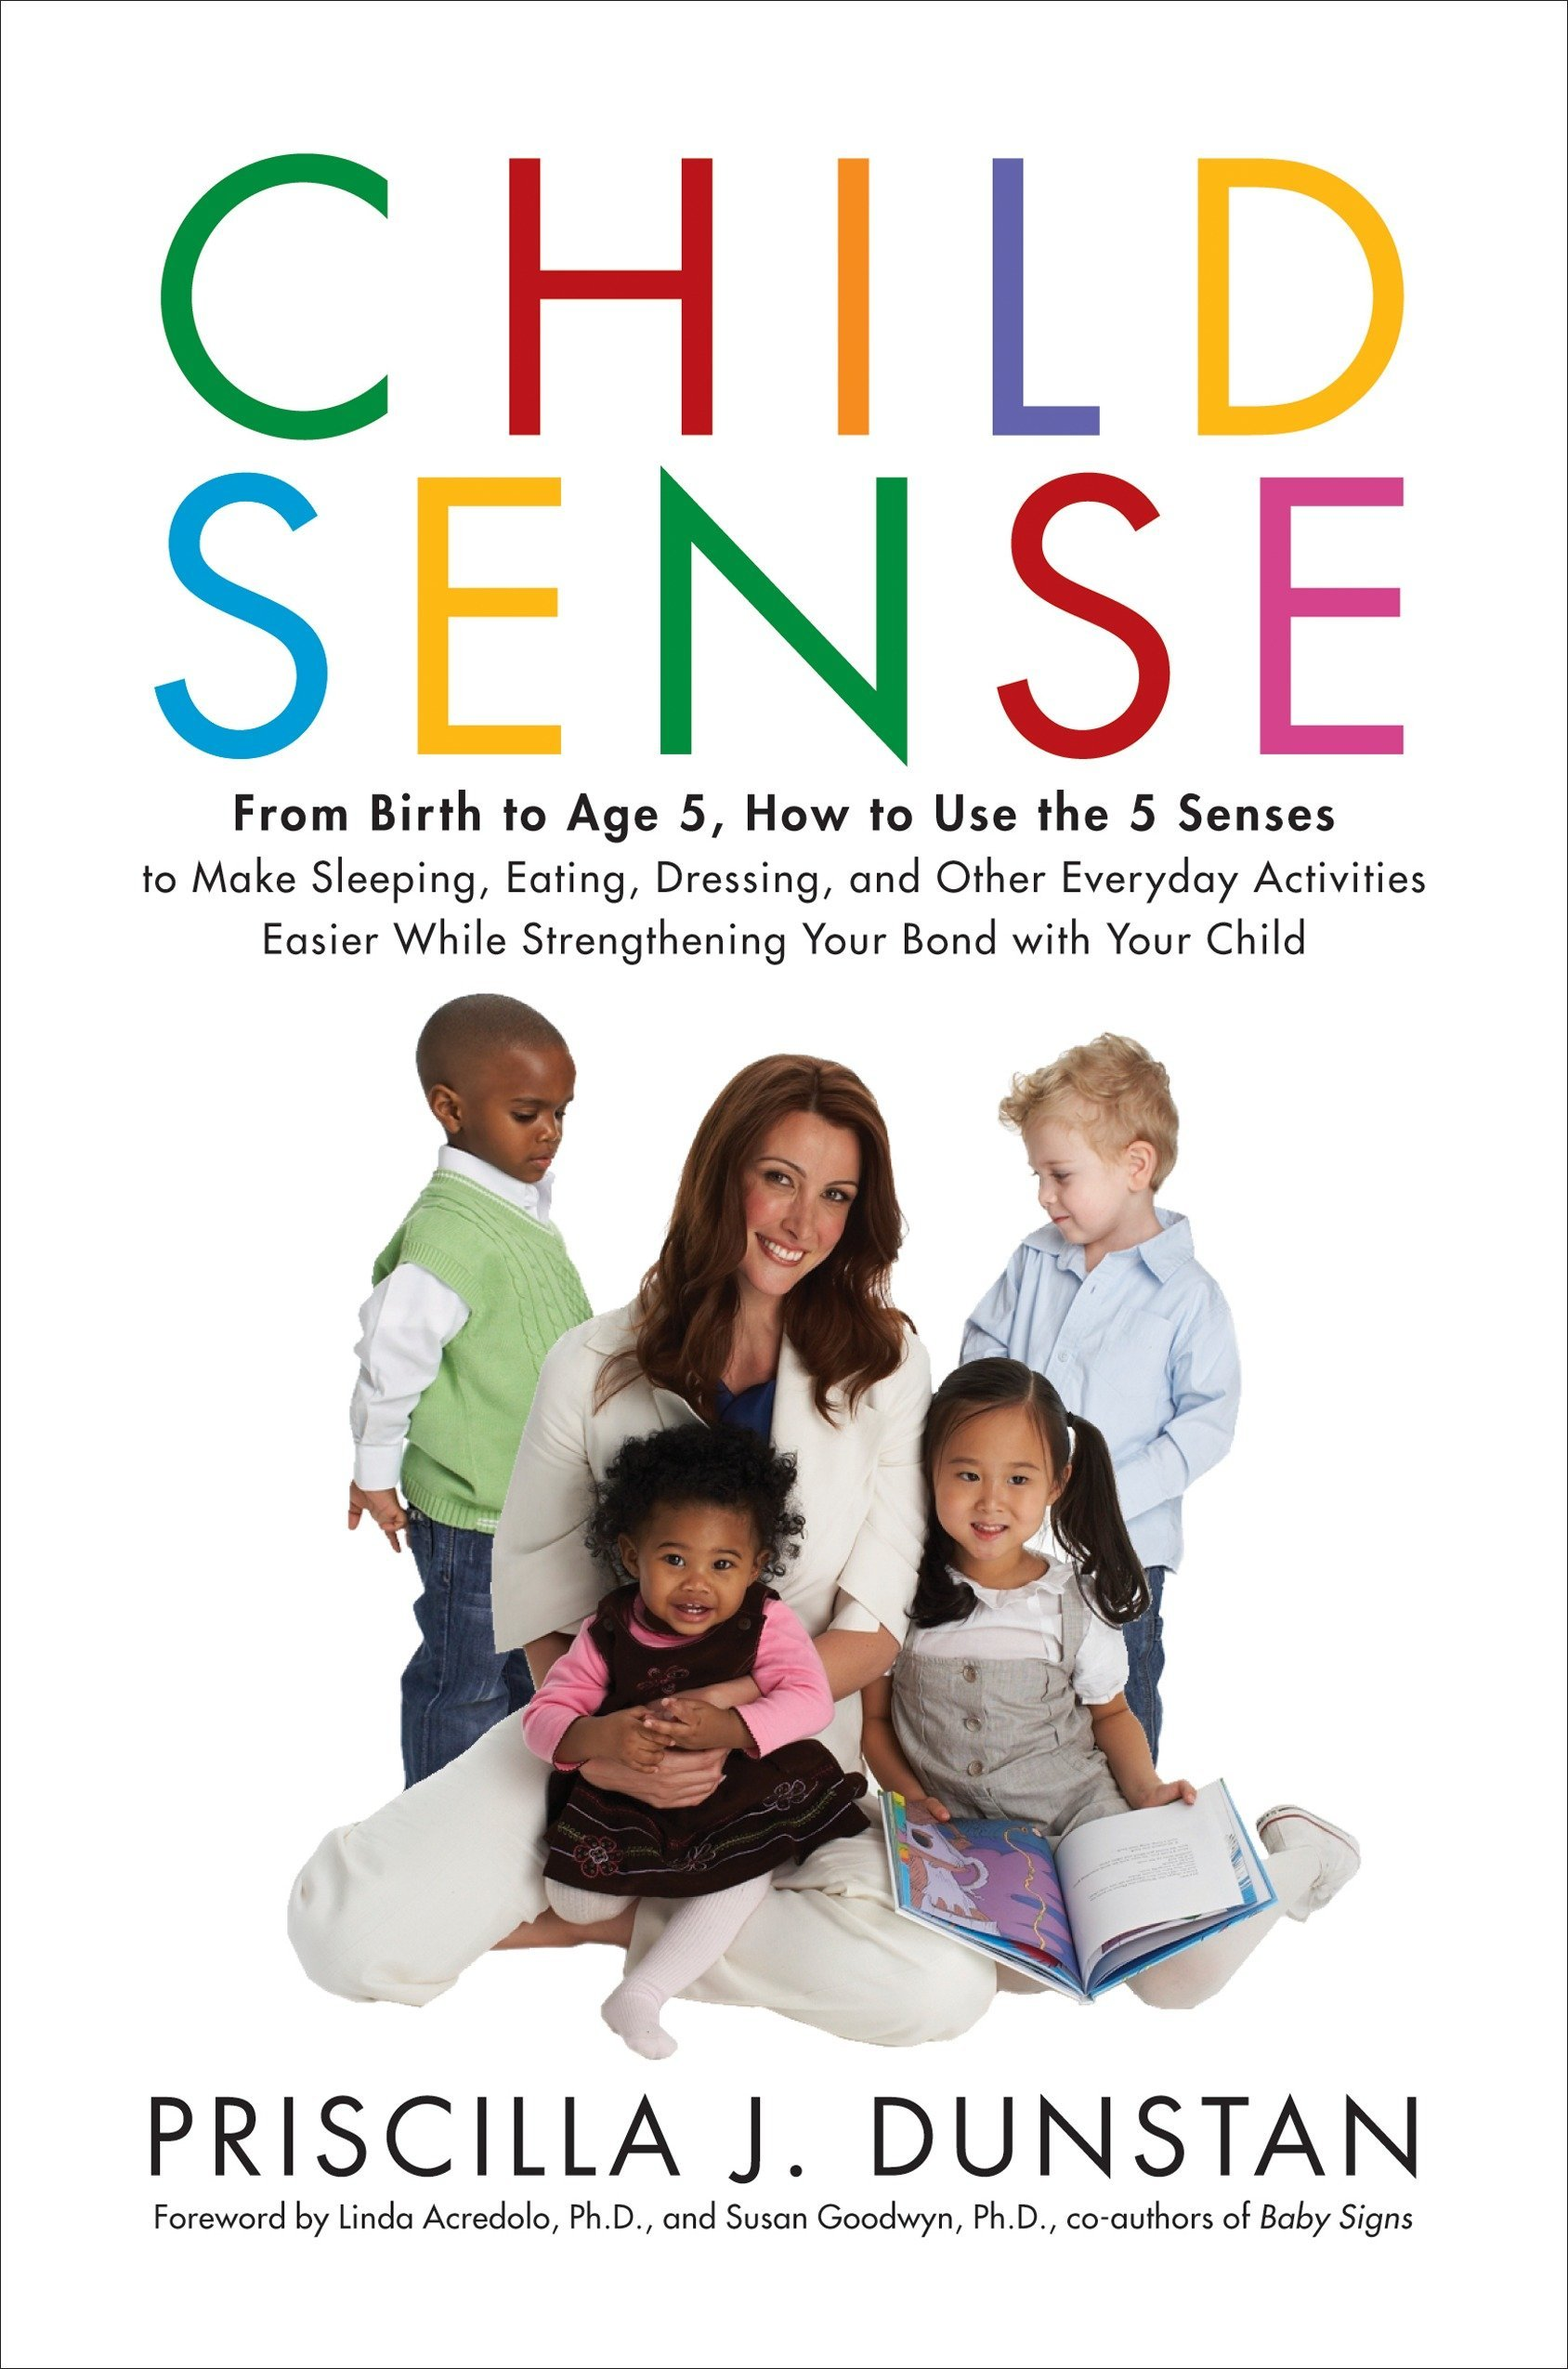 Buy Child Sense: From Birth to Age 5, How to Use the 5 Senses to Make  Sleeping, Eating, Dressing, and Other Everyday Activities Easier While  Strengthening ...